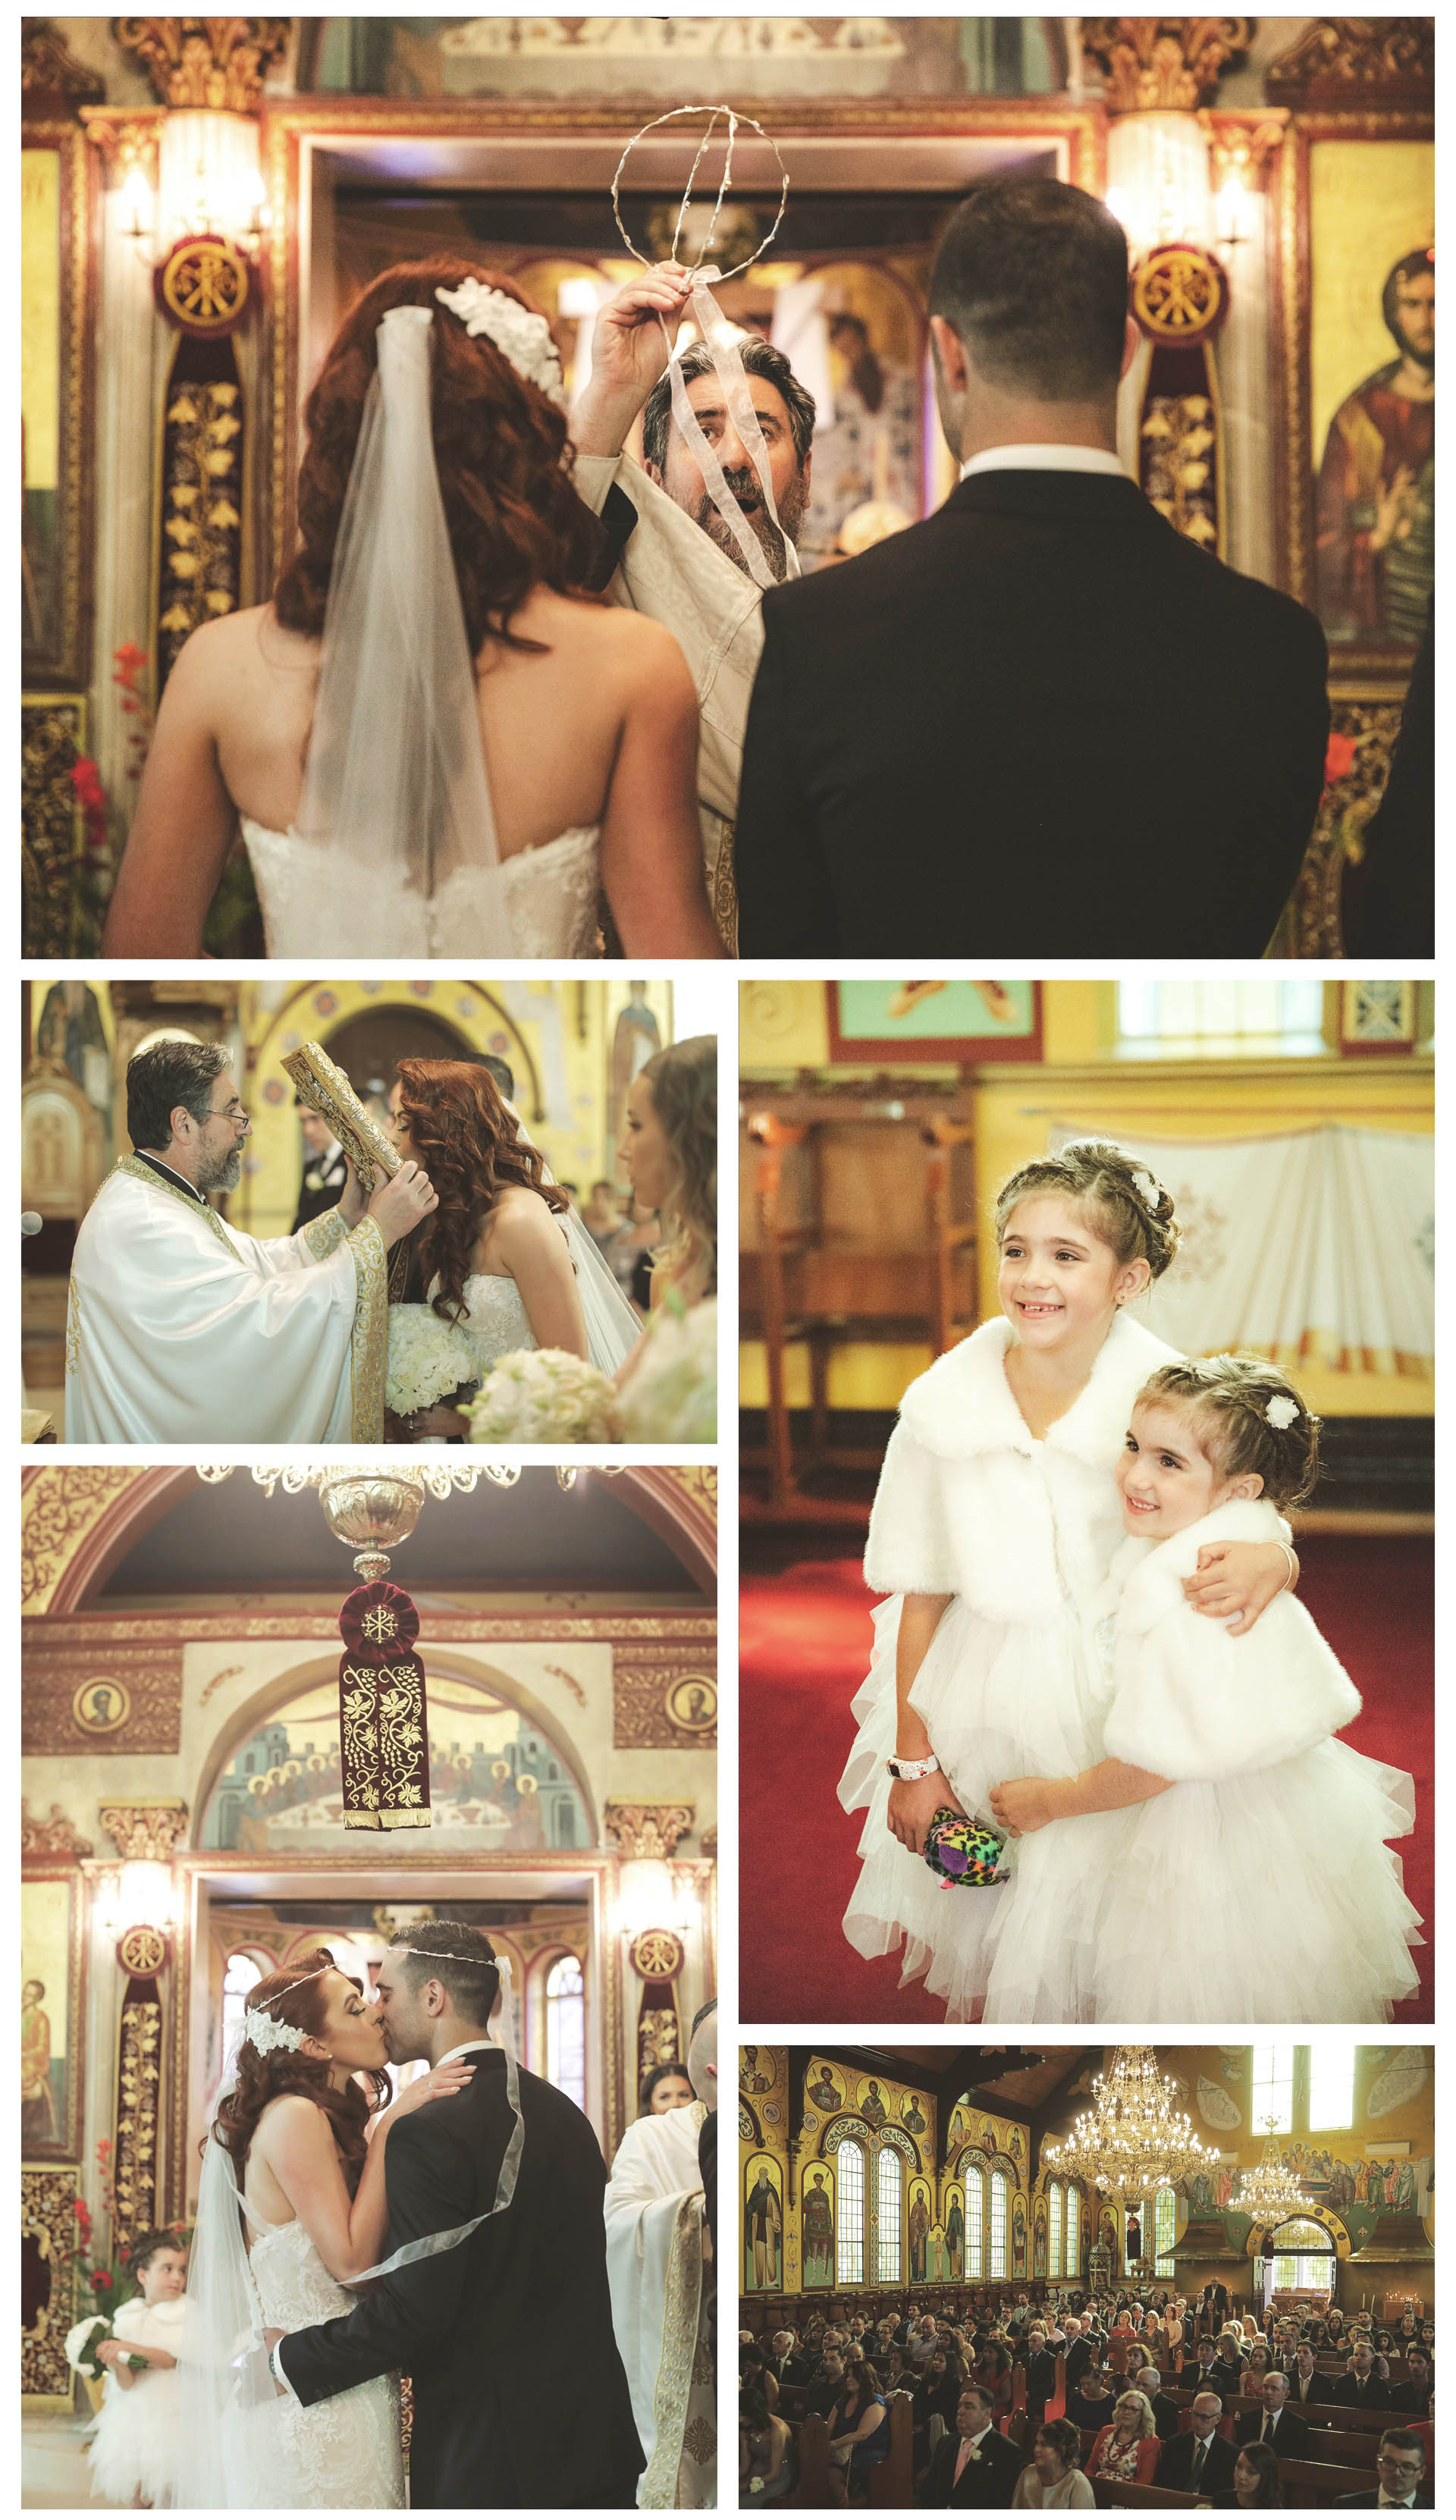 After the traditional greek ceremony in the greek orthodox church everyone throws rice grains representing blessings on the bride and groom